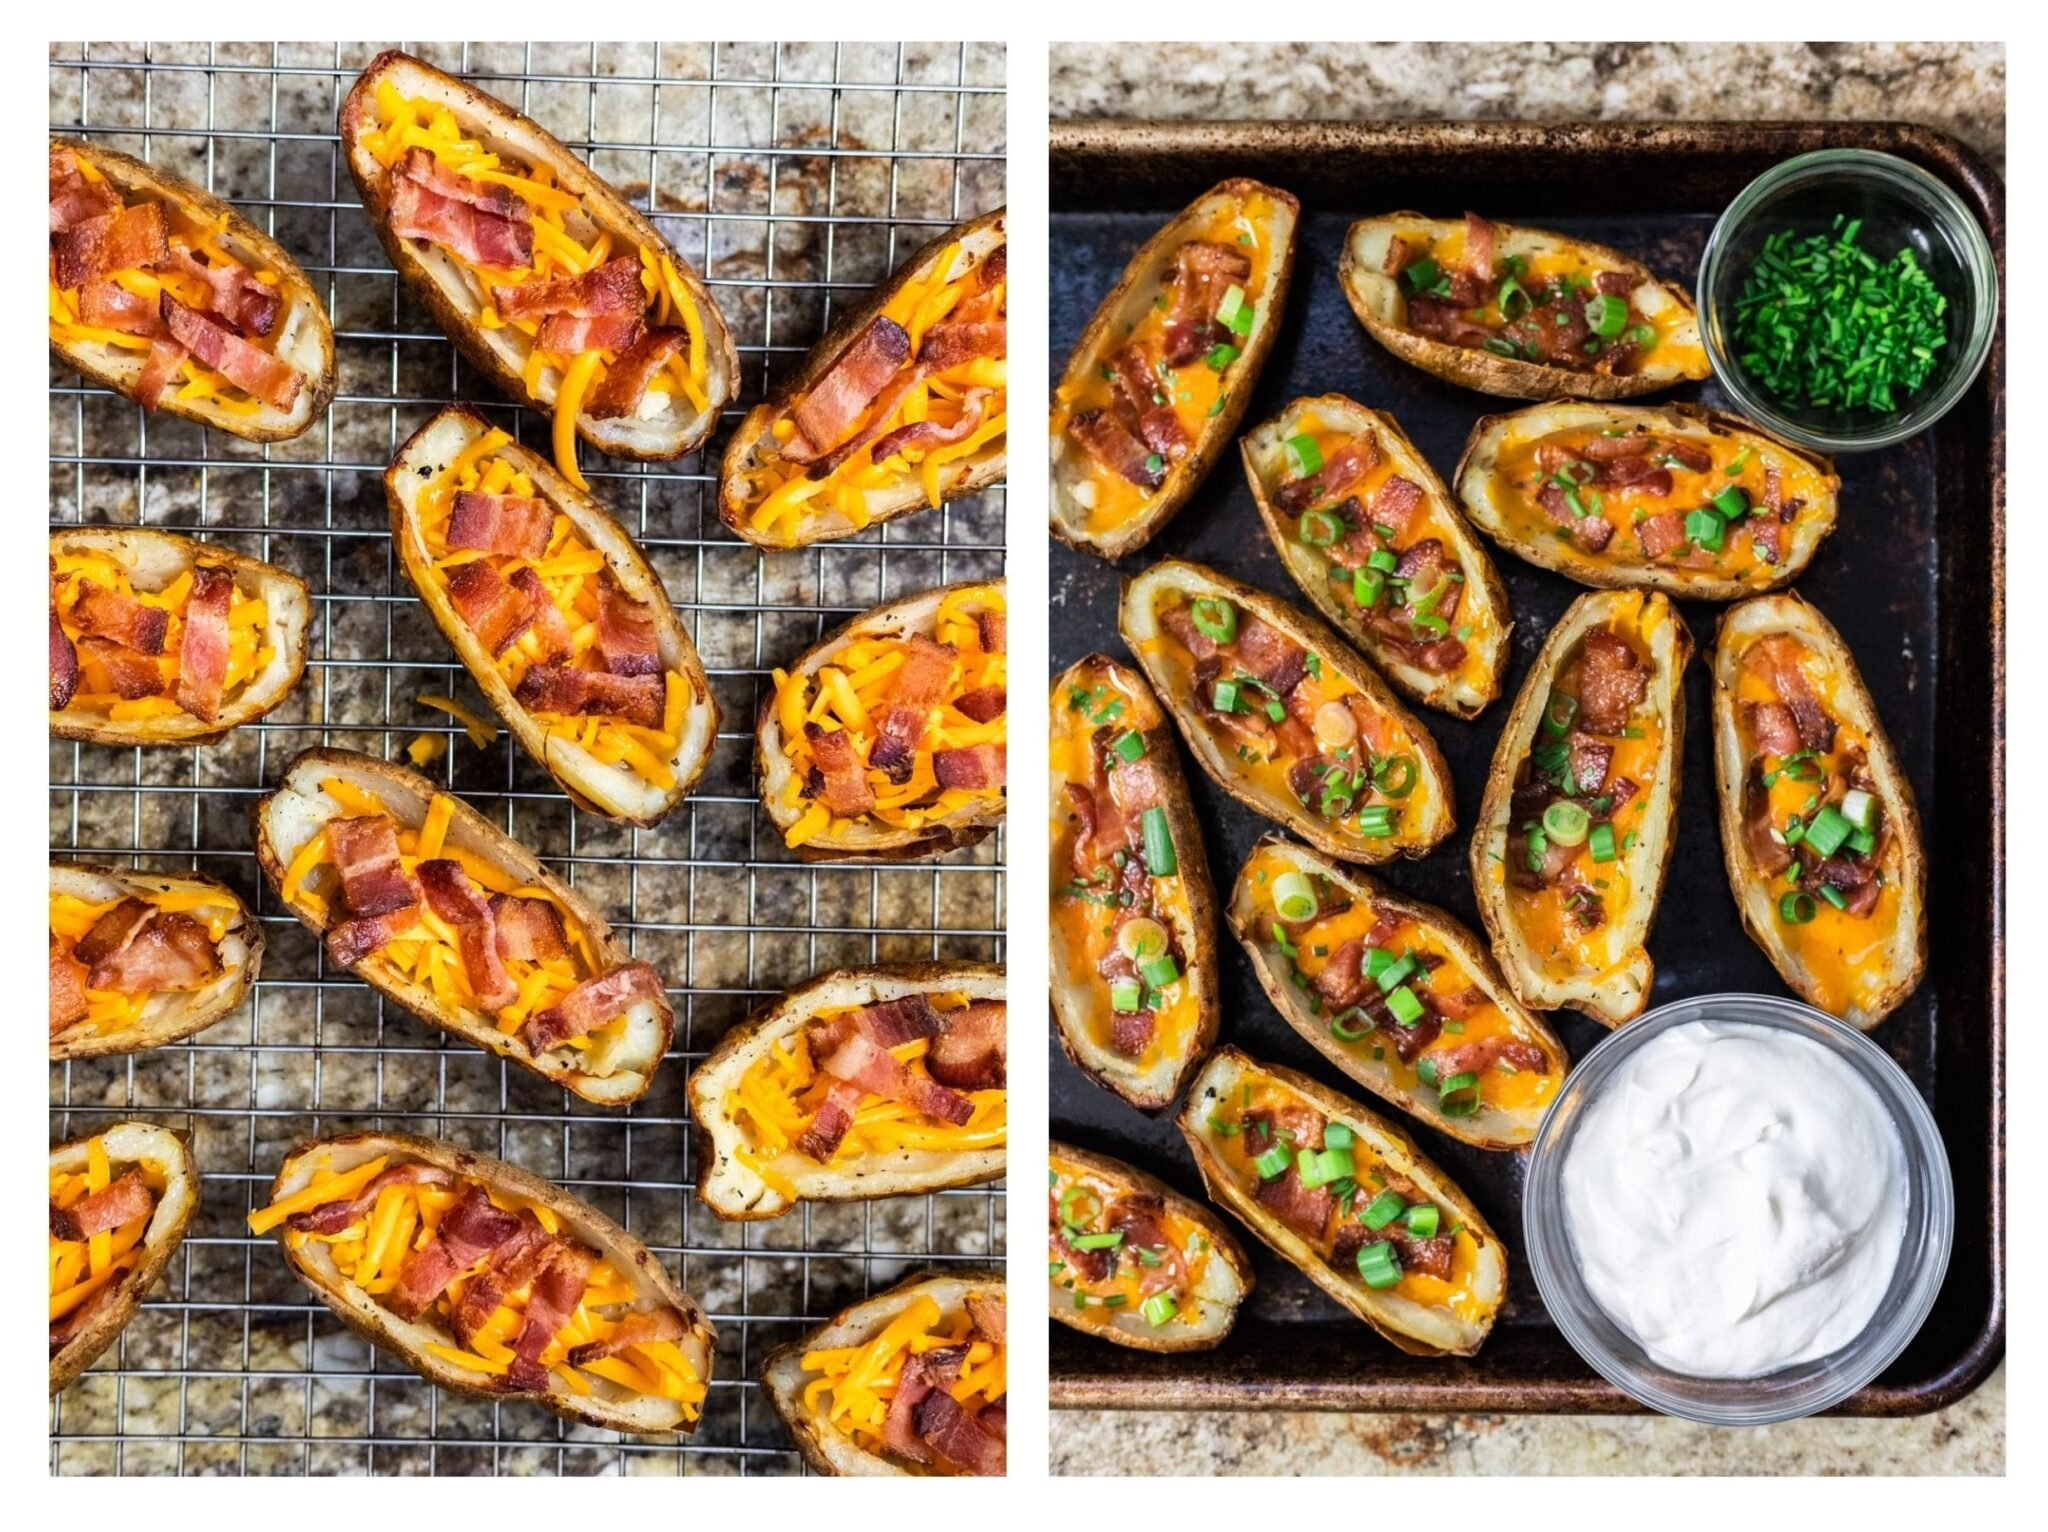 A photo collage of loaded but unbaked potato skins next to freshly baked potato skins on a tray serrved with sour cream.